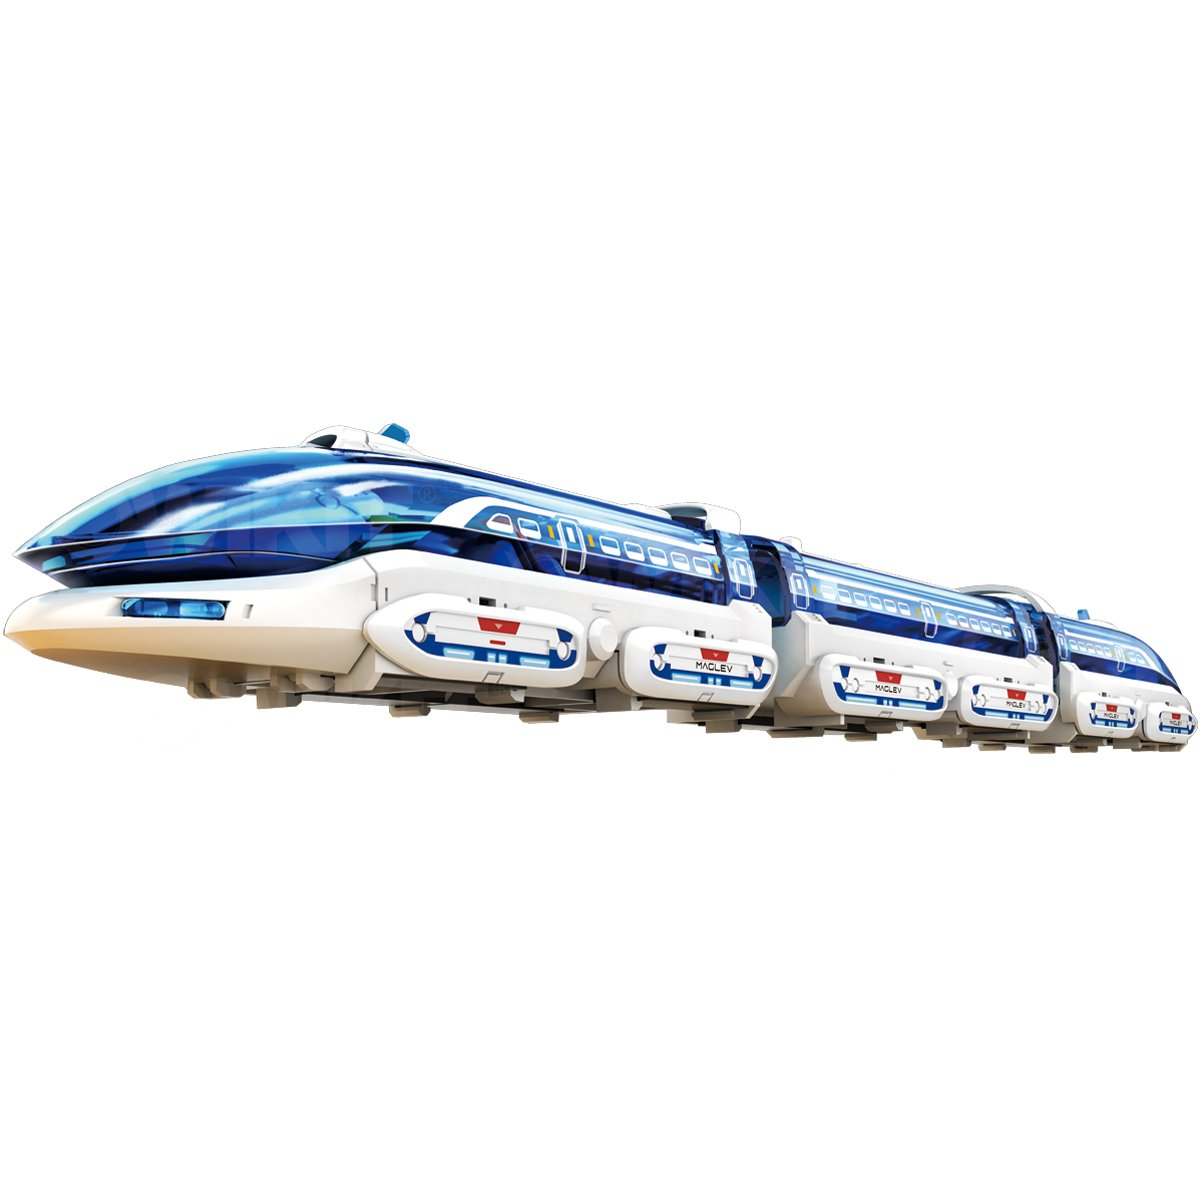 OWI Magnetic Levitation Express Mag-Lev Train by OWI (Image #3)